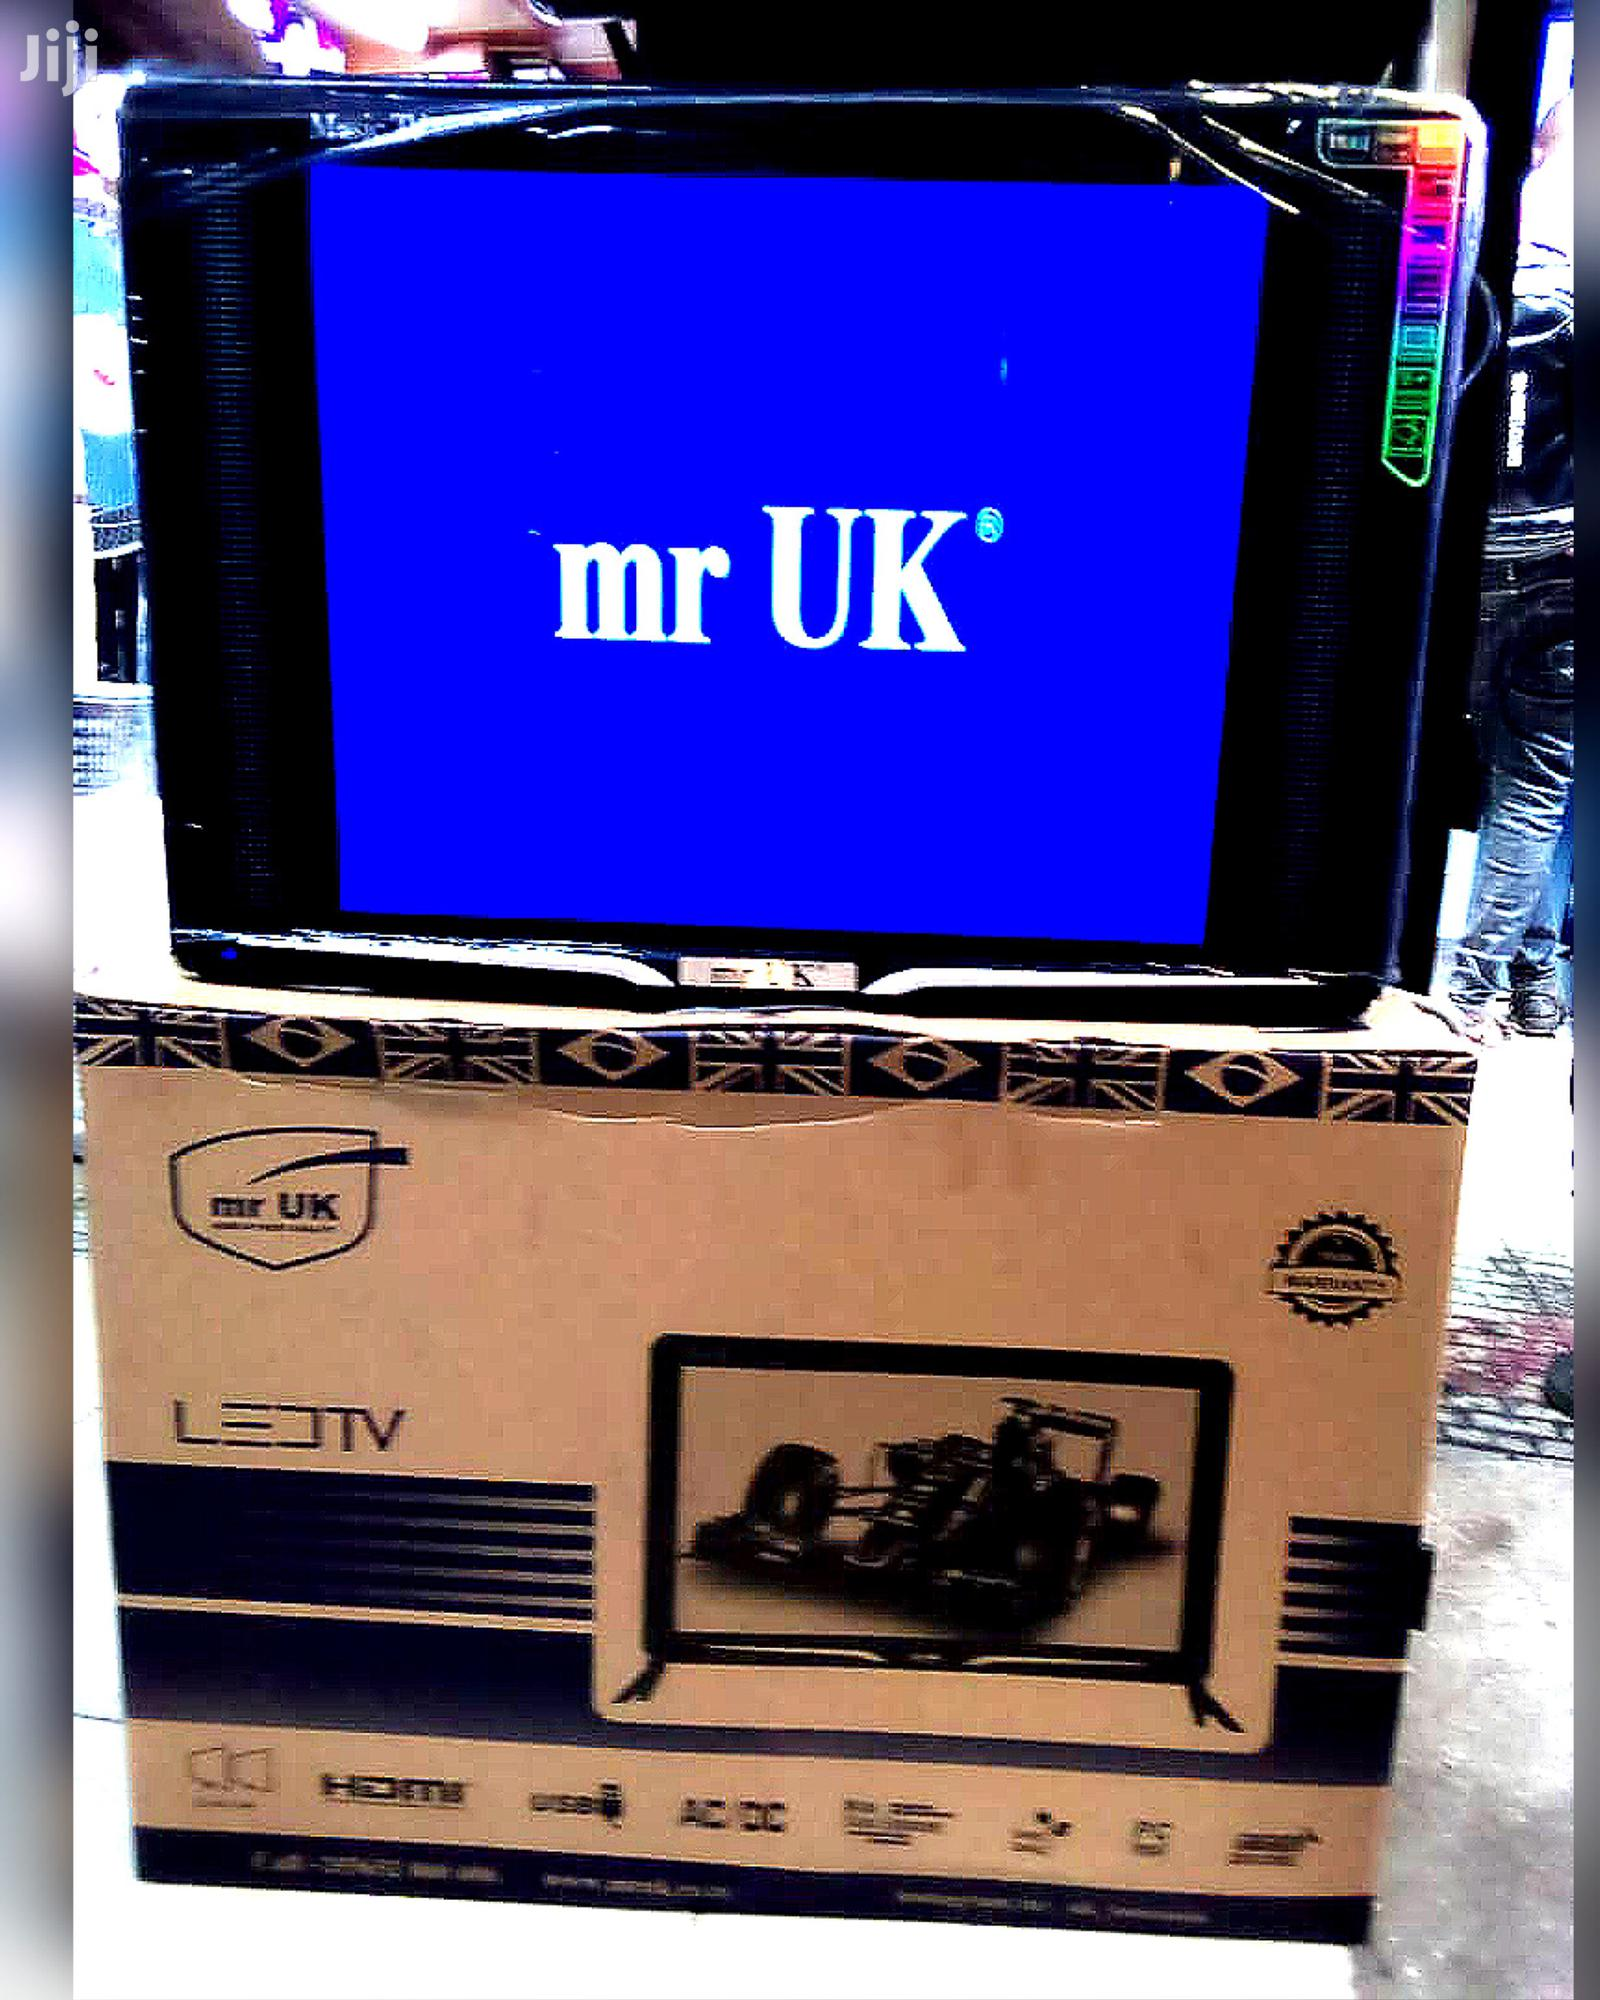 Mr UK LED TV 18 Inches | TV & DVD Equipment for sale in Ilala, Dar es Salaam, Tanzania